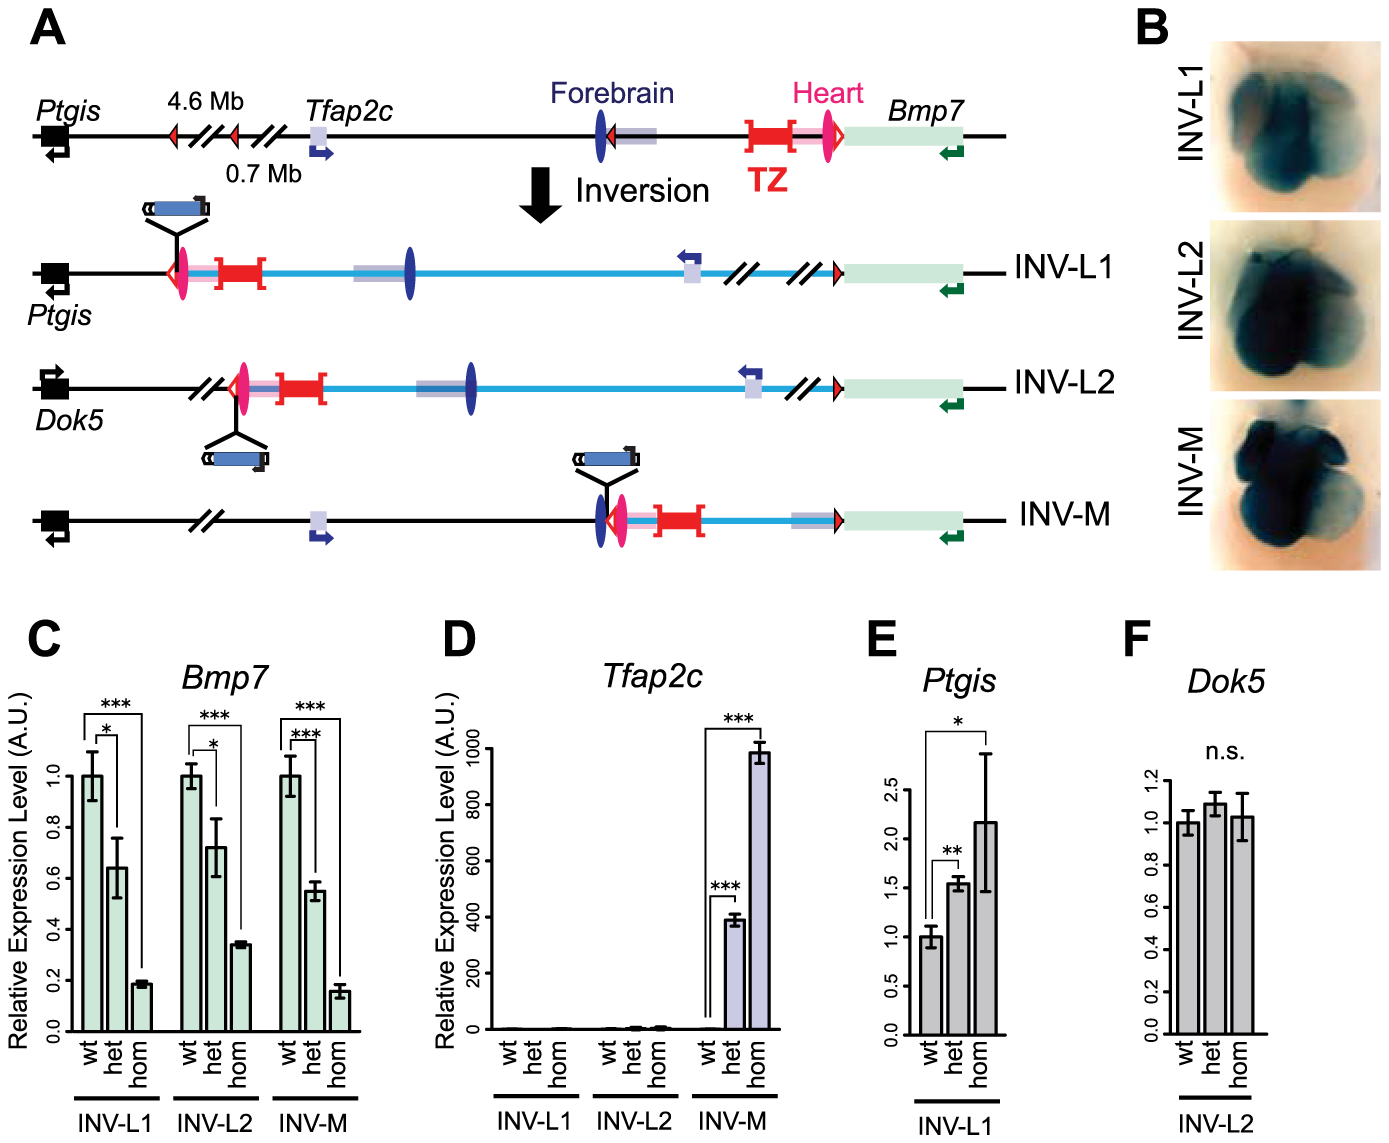 Inversion alleles reallocate the target of the heart enhancer.